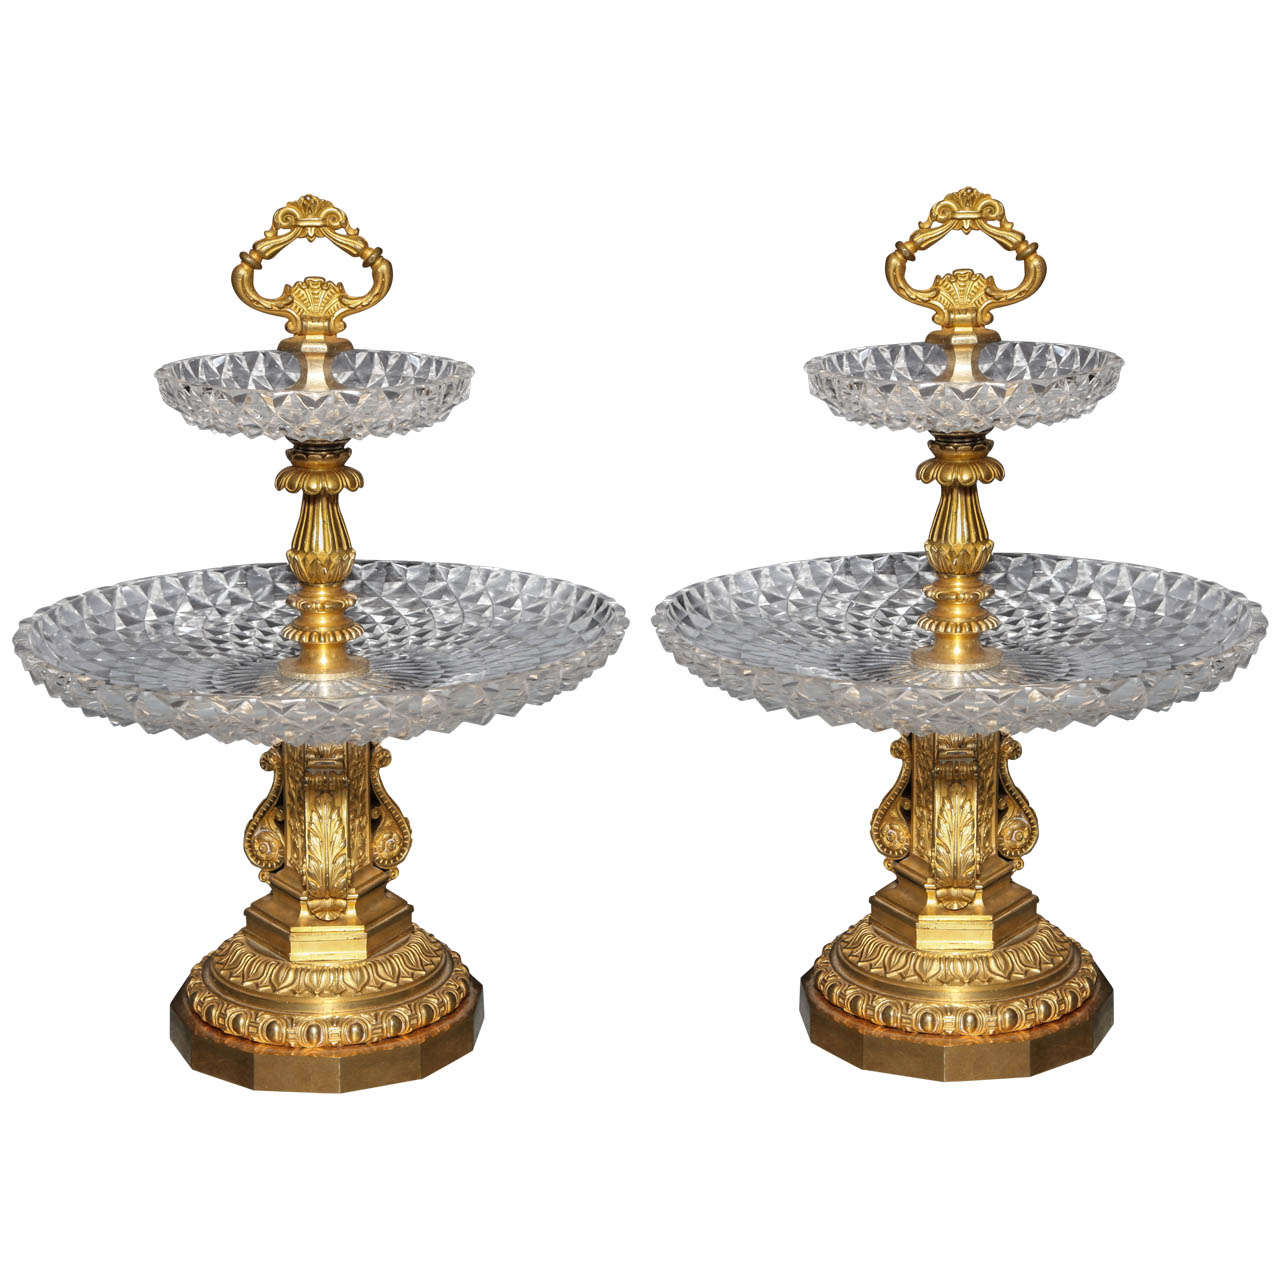 Pair of Antique French Two Tiered Tazzas or Centerpieces by P. Philippe Thomier For Sale